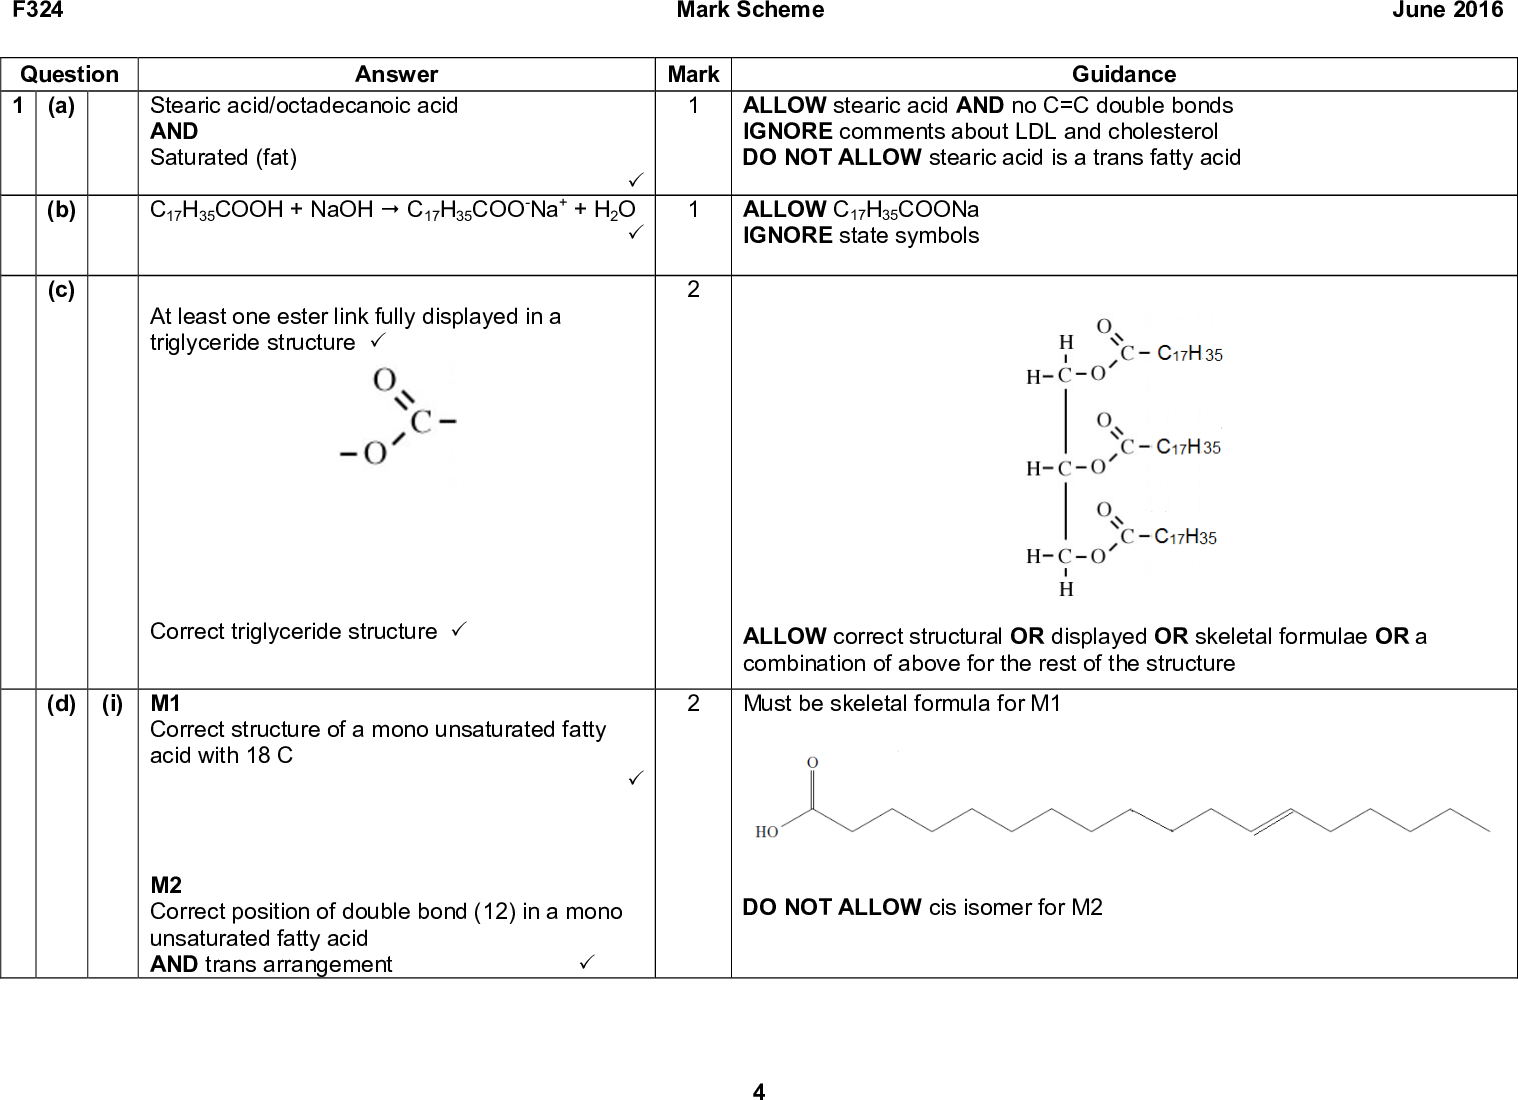 F324 Mark Scheme June 2016 Question 1 (a) (b) (c) Answer Stearic acid/octadecanoic acid AND Saturated (fat) (cid:51) C17H35COOH + NaOH (cid:5) C17H35COO-Na+ + H2O (cid:51) At least one ester link fully displayed in a triglyceride structure (cid:51) Correct triglyceride structure (cid:51) (d) (i) M1 Correct structure of a mono unsaturated fatty acid with 18 C M2 Correct position of double bond (12) in a mono unsaturated fatty acid AND trans arrangement (cid:51) Mark Guidance ALLOW stearic acid AND no C=C double bonds IGNORE comments about LDL and cholesterol DO NOT ALLOW stearic acid is a trans fatty acid ALLOW C17H35COONa IGNORE state symbols ALLOW correct structural OR displayed OR skeletal formulae OR a combination of above for the rest of the structure 2 Must be skeletal formula for M1 DO NOT ALLOW cis isomer for M2 (cid:51)<br />  F324 Mark Scheme June 2016 Question Answer (ii) Each carbon atom in the double bond is attached to (two) different groups/atoms (cid:51) Mark Total Guidance ALLOW Each carbon atom of the double bond is attached to a H atom DO NOT ALLOW functional group for group DO NOT ALLOW the carbon atoms are attached to different groups IGNORE two of the substituent groups are the same<br />